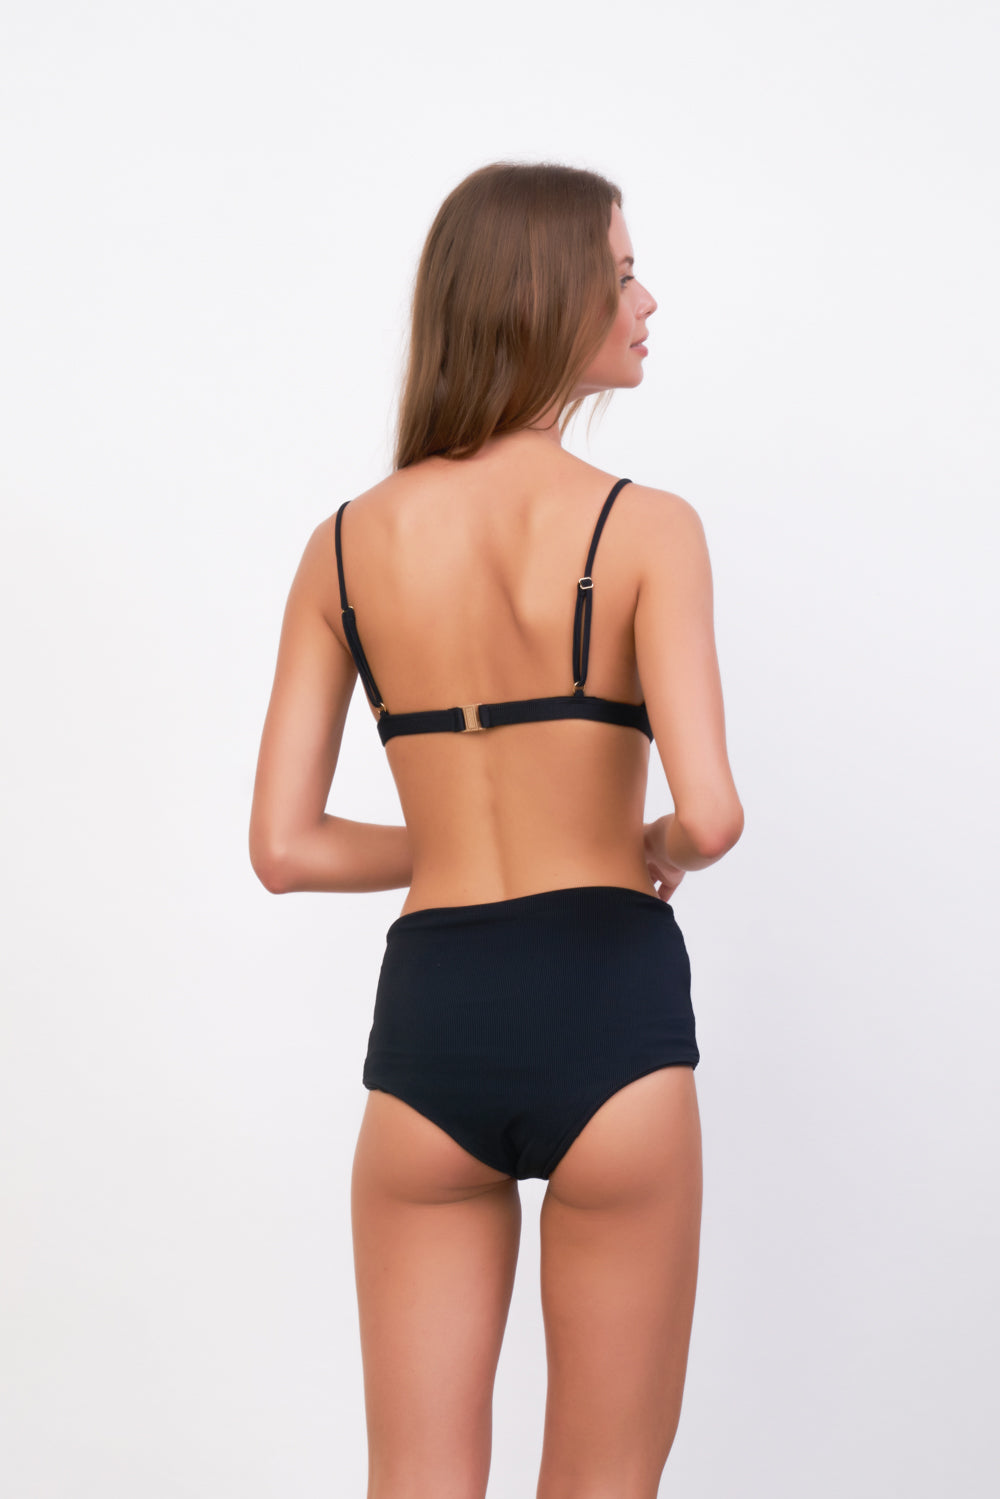 Storm Swimwear - Cannes - High Waist Bikini Bottom in Raven Corduroy